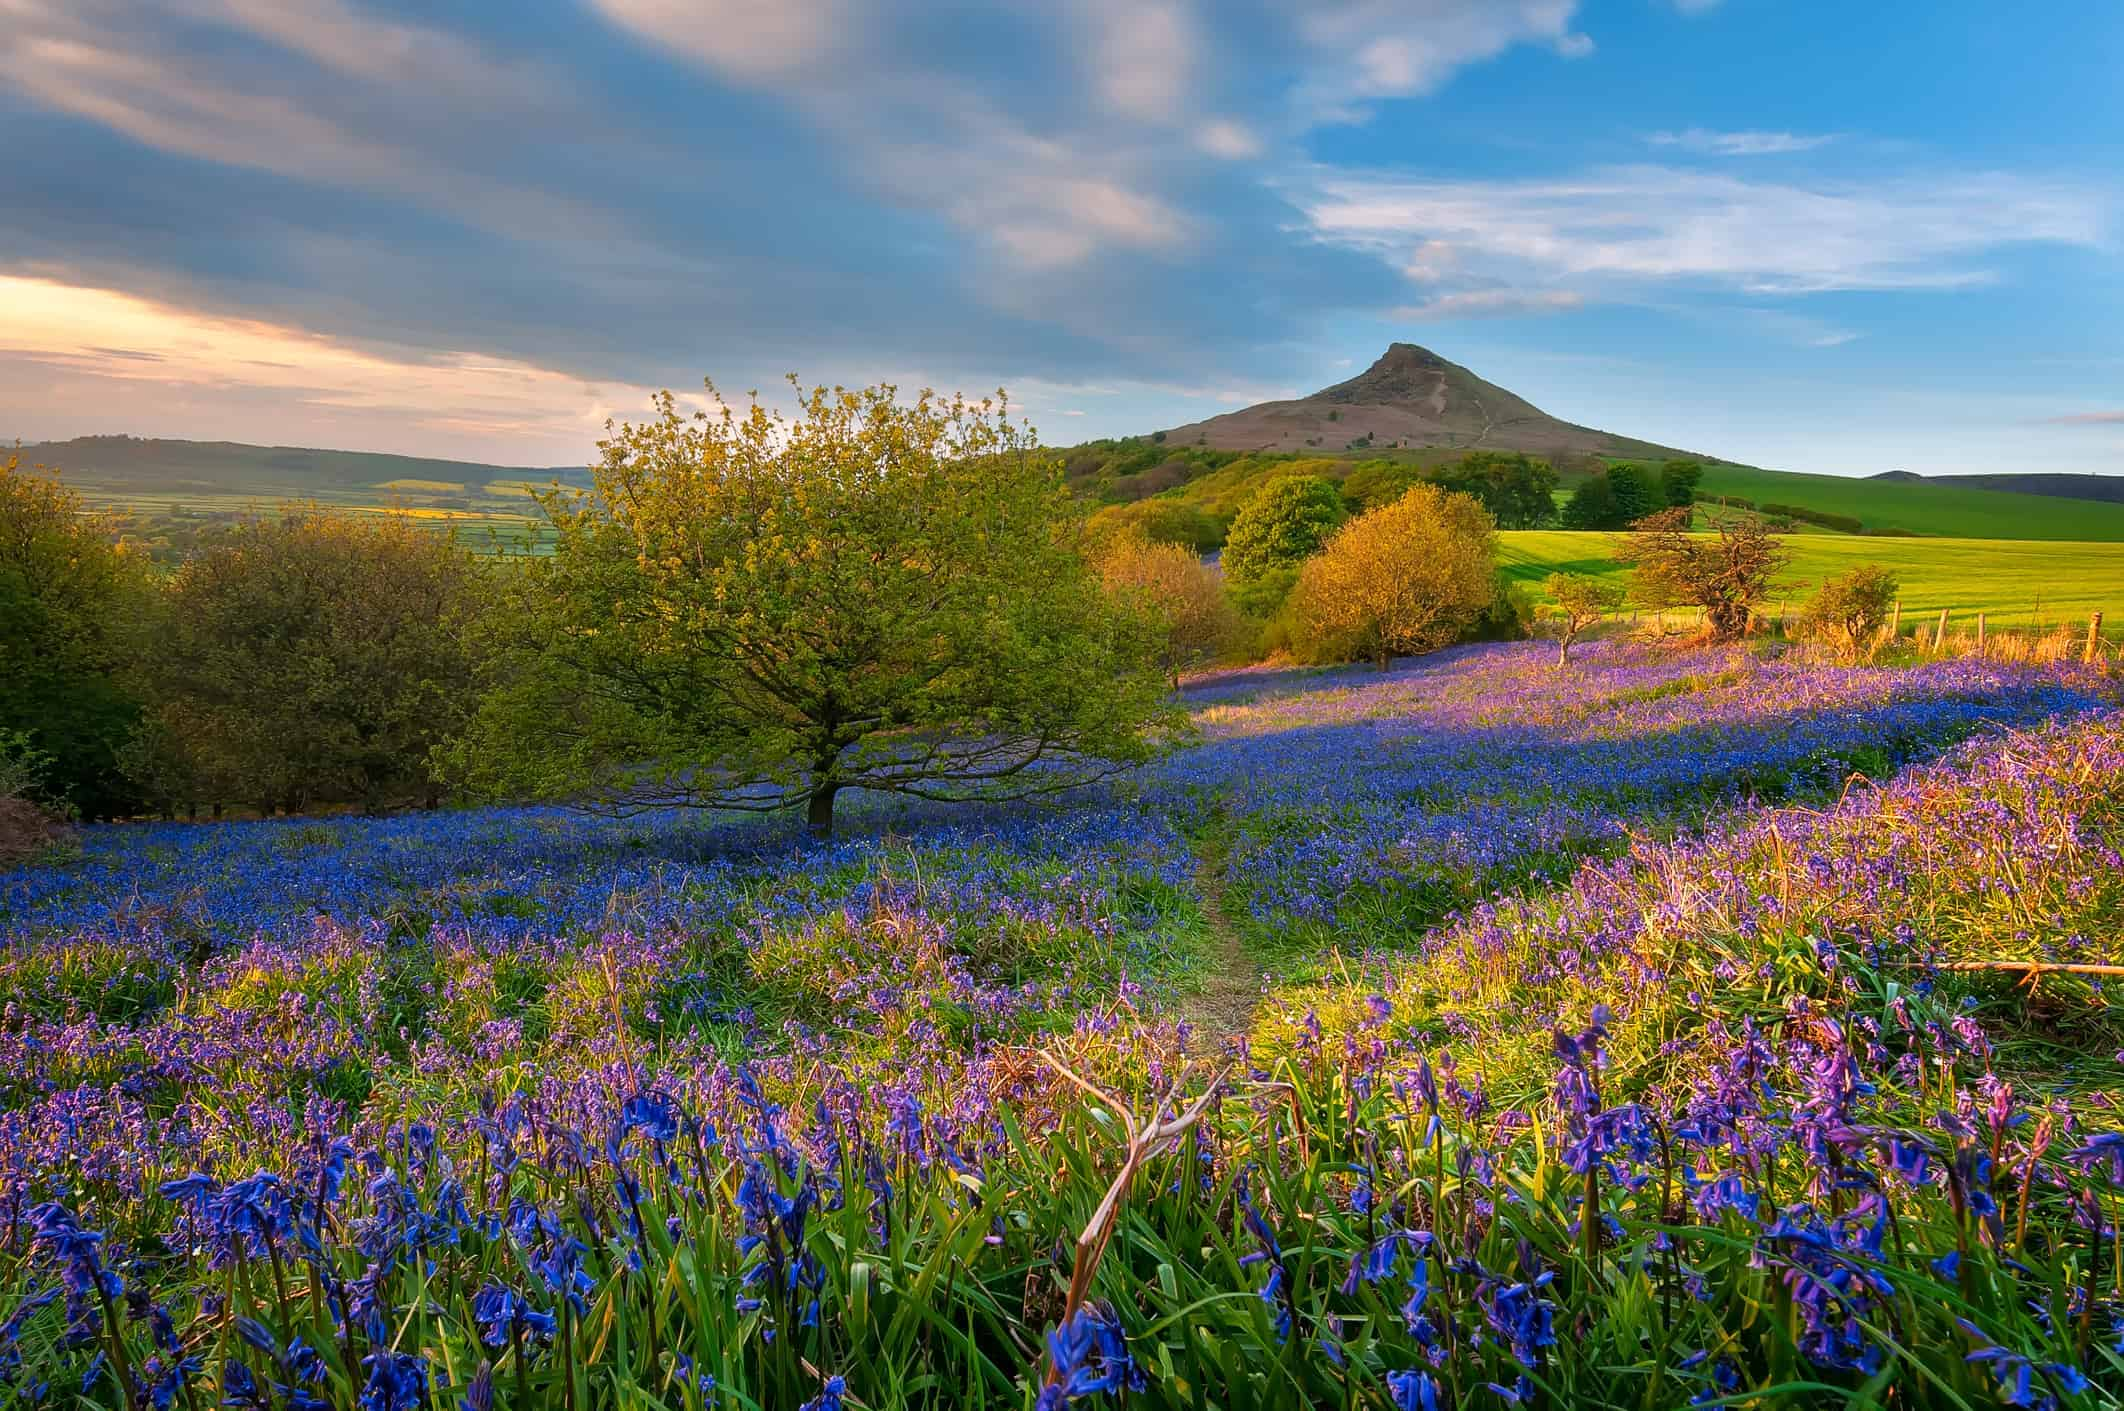 Bluebells in bloom in the North York Moors National Park